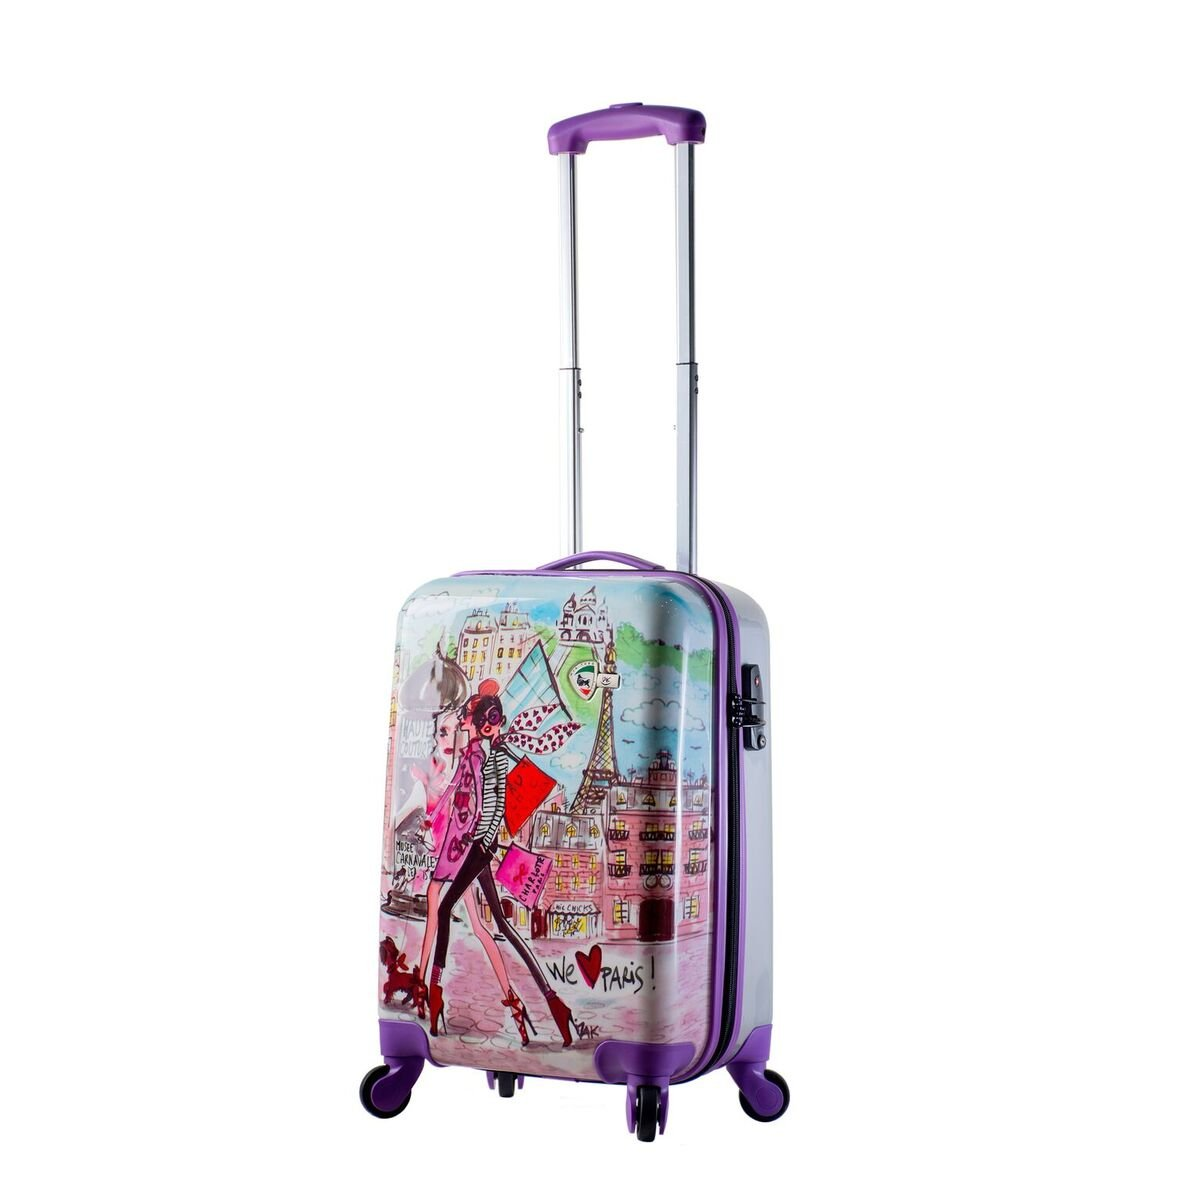 Mia Toro Izak-Paris Fashion Hard-side Spinner Luggage 3PC/Set with 10-Year Warranty--BEST GIFT for Christmas!!!!! by Mia Toro (Image #3)